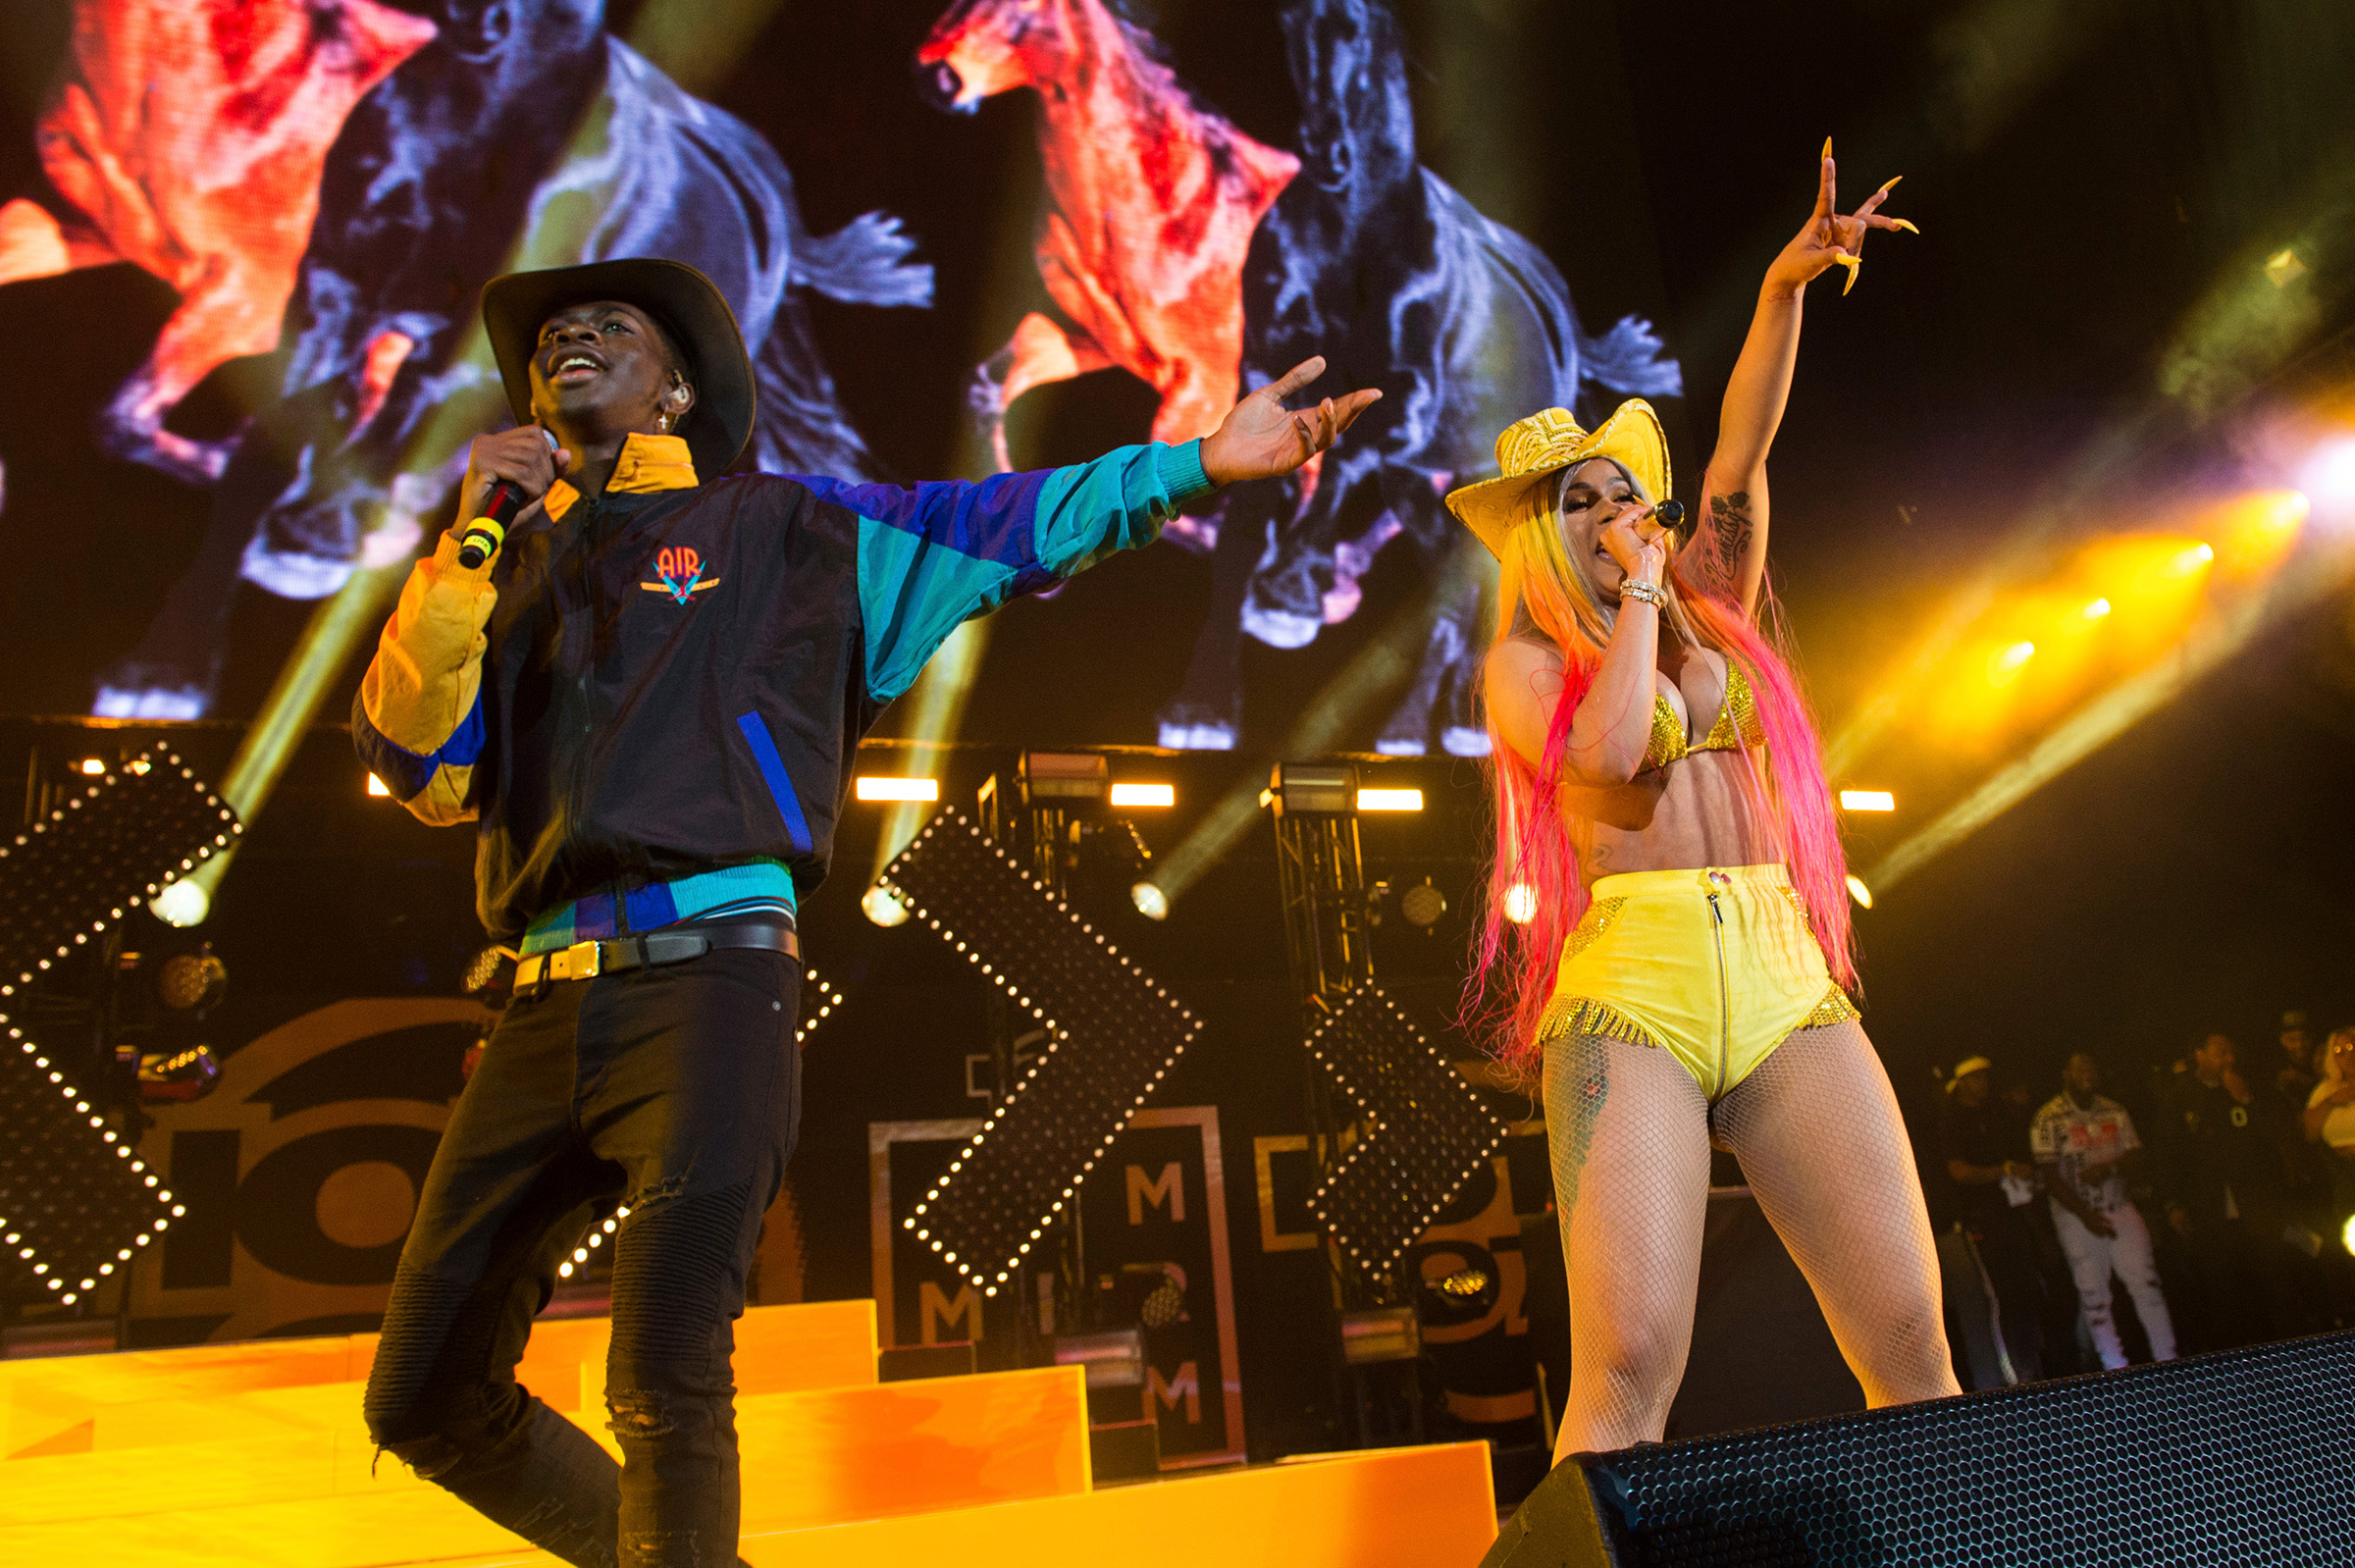 Lil Nas X, left, and Cardi B perform at MetLife Stadium in New Jersey on June 2, 2019